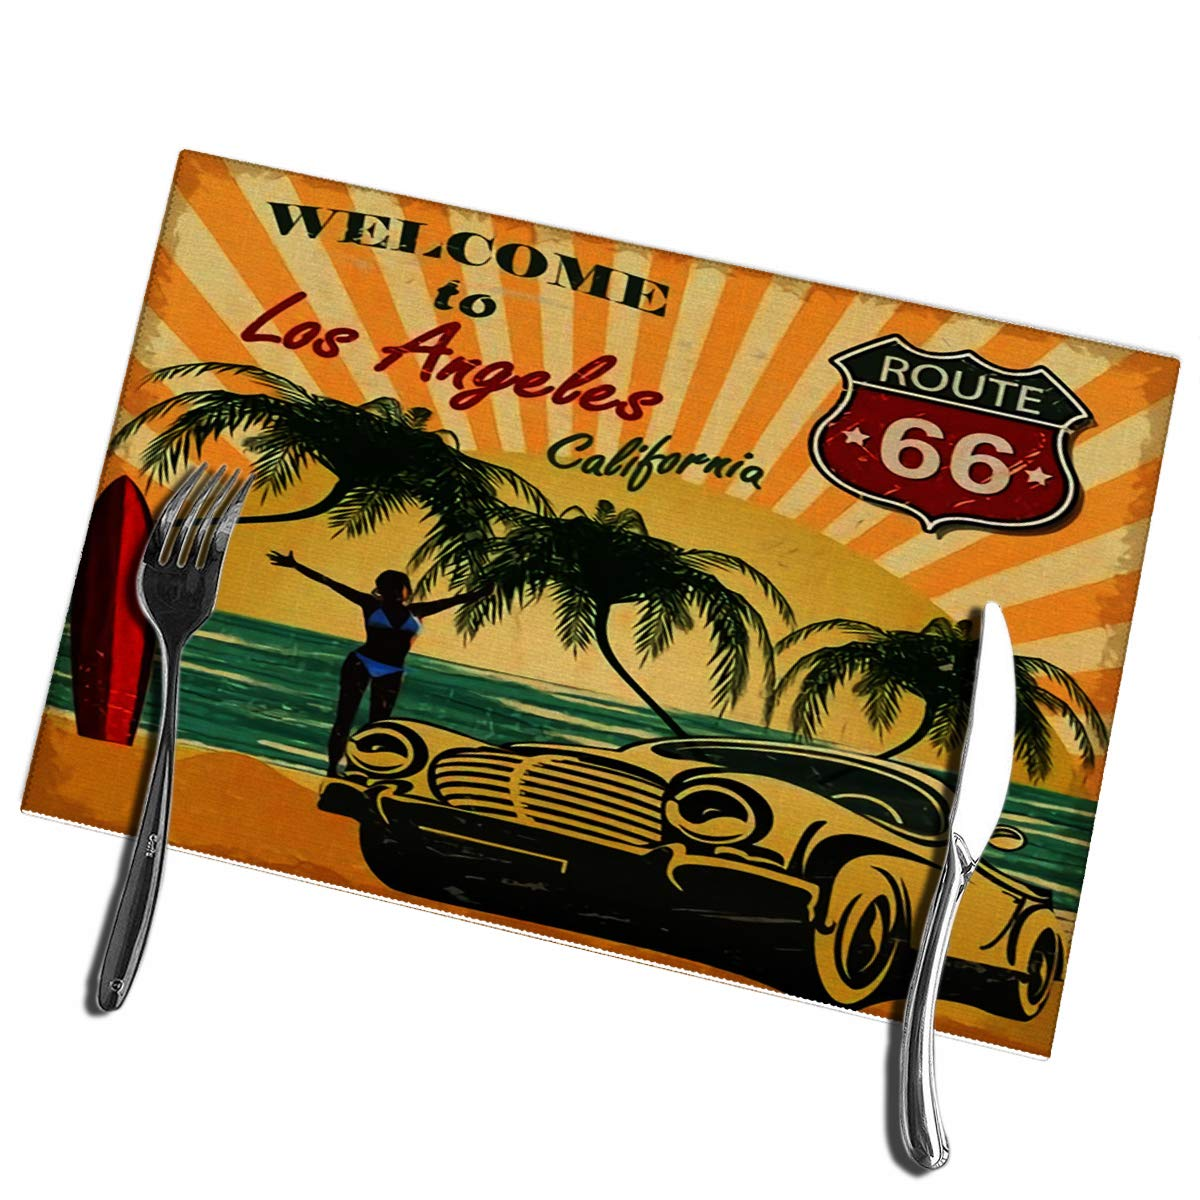 Yxungdiy Dining Table Placemats Set of 6 Welcome to Los Angeles California Retro Poster Heat-Resistant Placemats